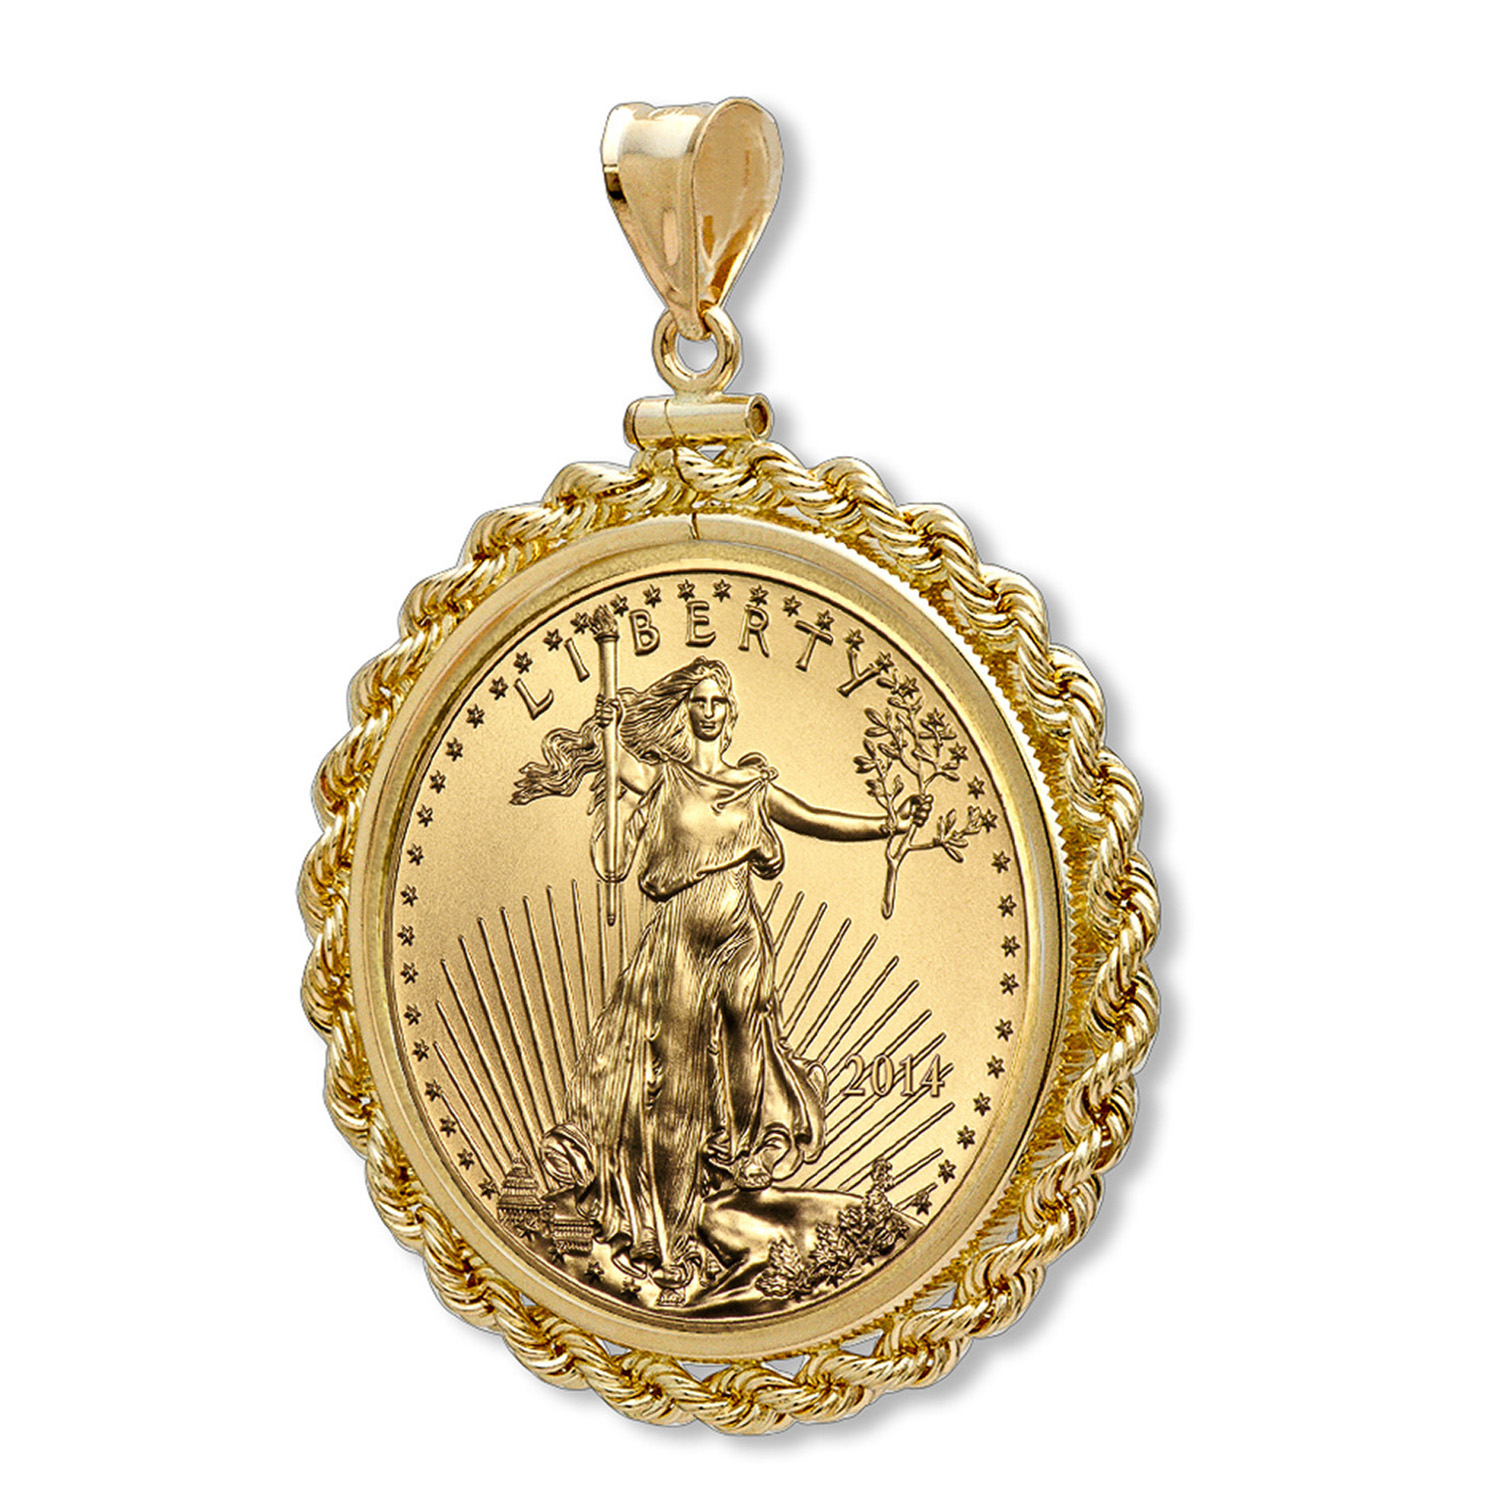 2014 1/2 oz Gold Eagle Pendant (Rope-ScrewTop Bezel)